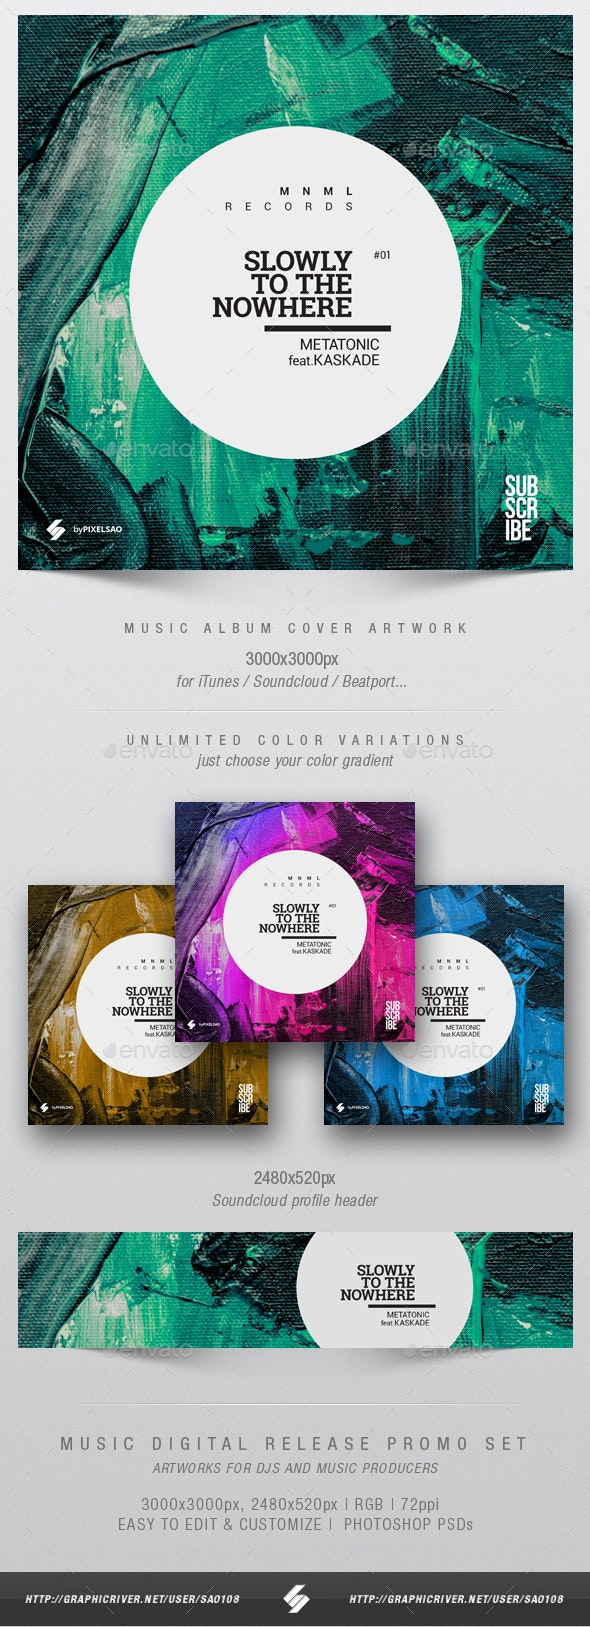 Slowly To Nowhere - Music Album Cover Artwork Template - Miscellaneous Social Media